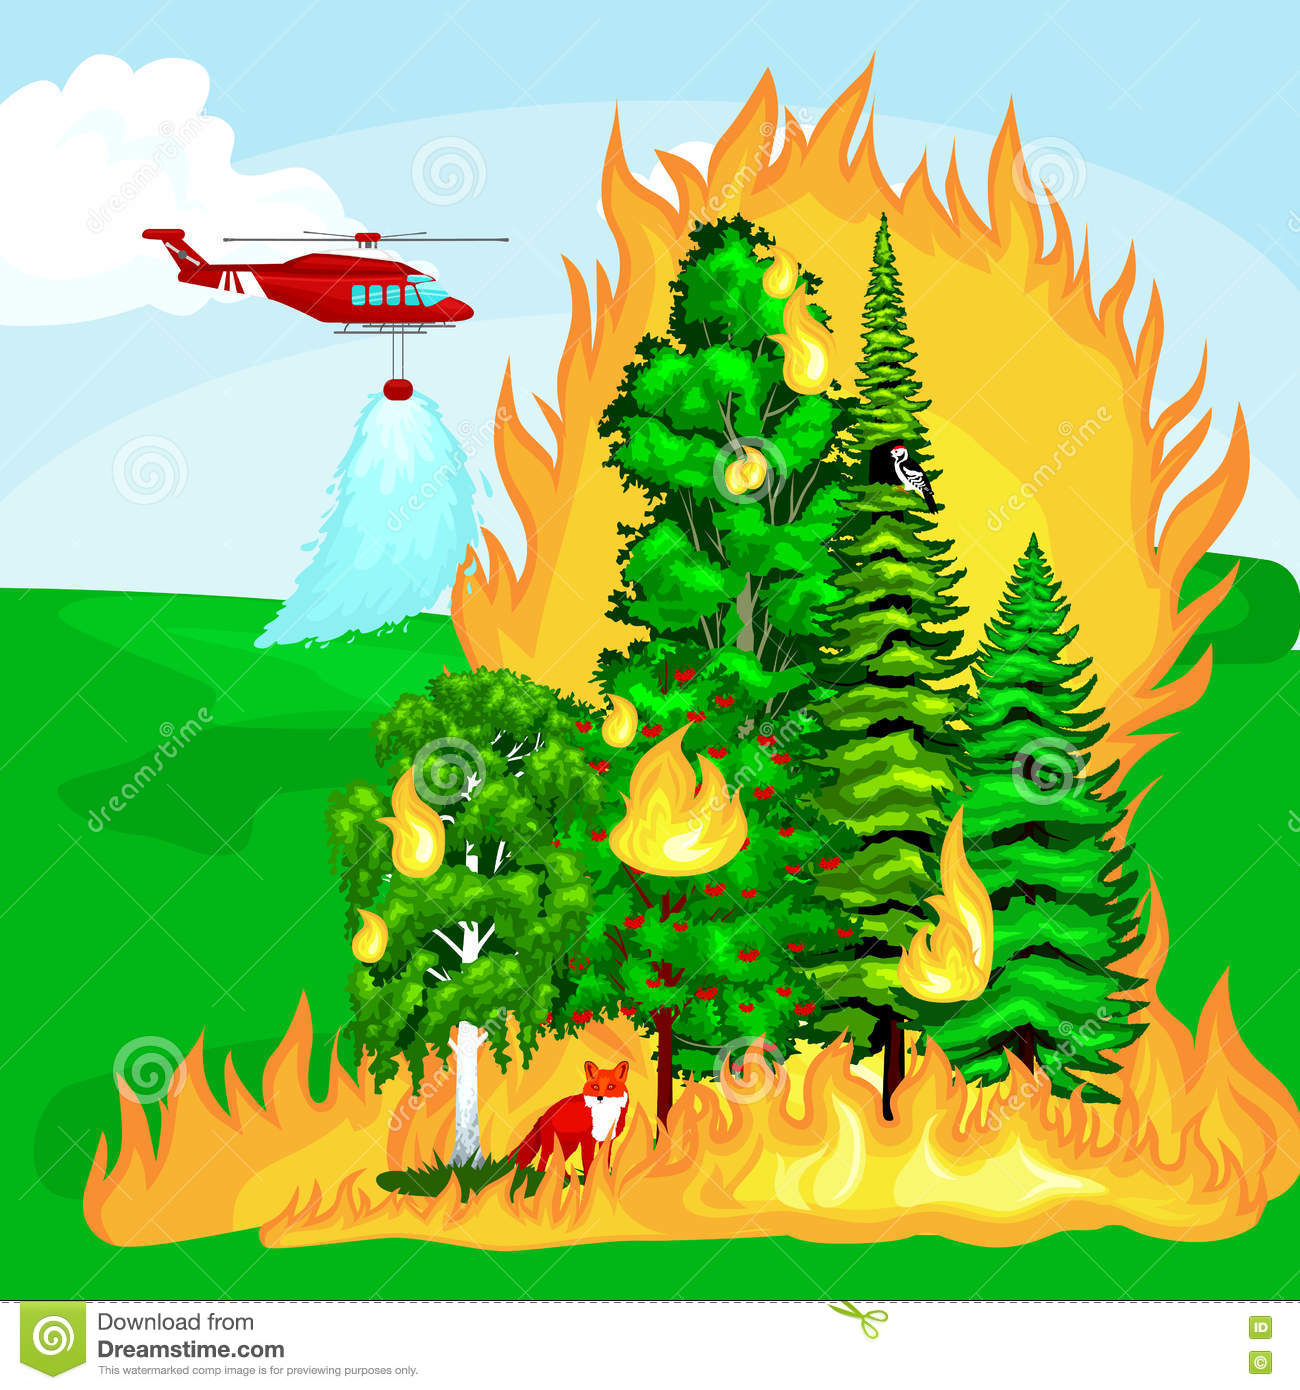 Forest Fire, Fire In Forest Landscape Damage, Nature Ecology.